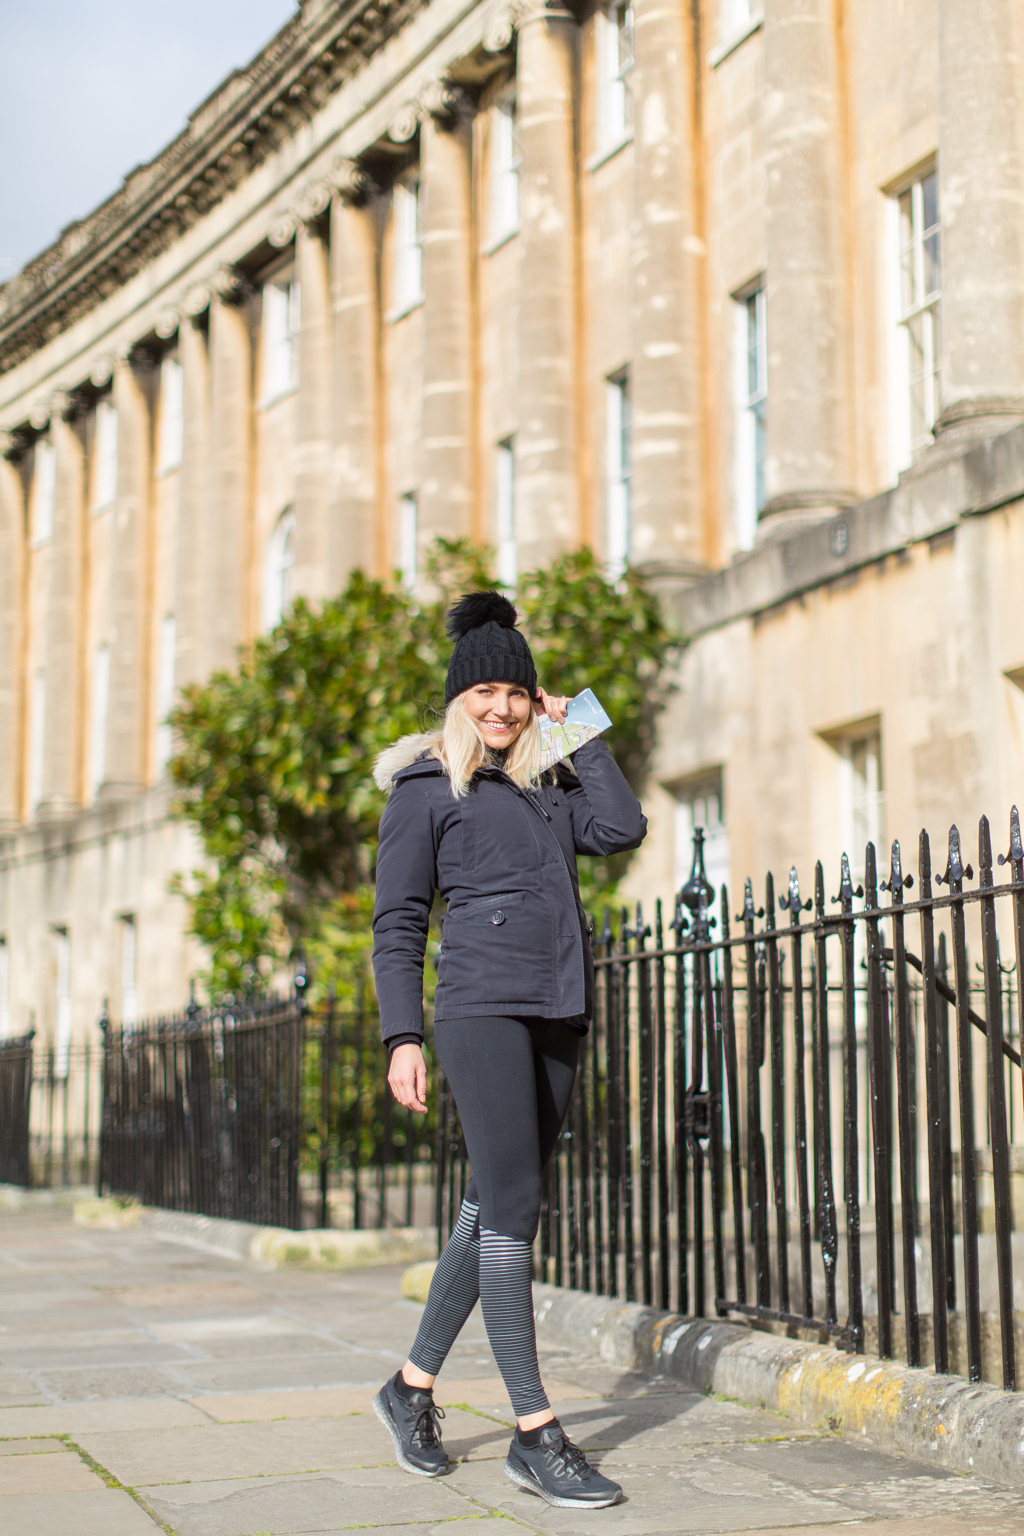 Fitness On Toast Faya Blog Girl Healthy Visit Bath Tourism Travel Royal Crescent Hotel Wellness Escape City Break London Bristol Travel Wellbeing-24